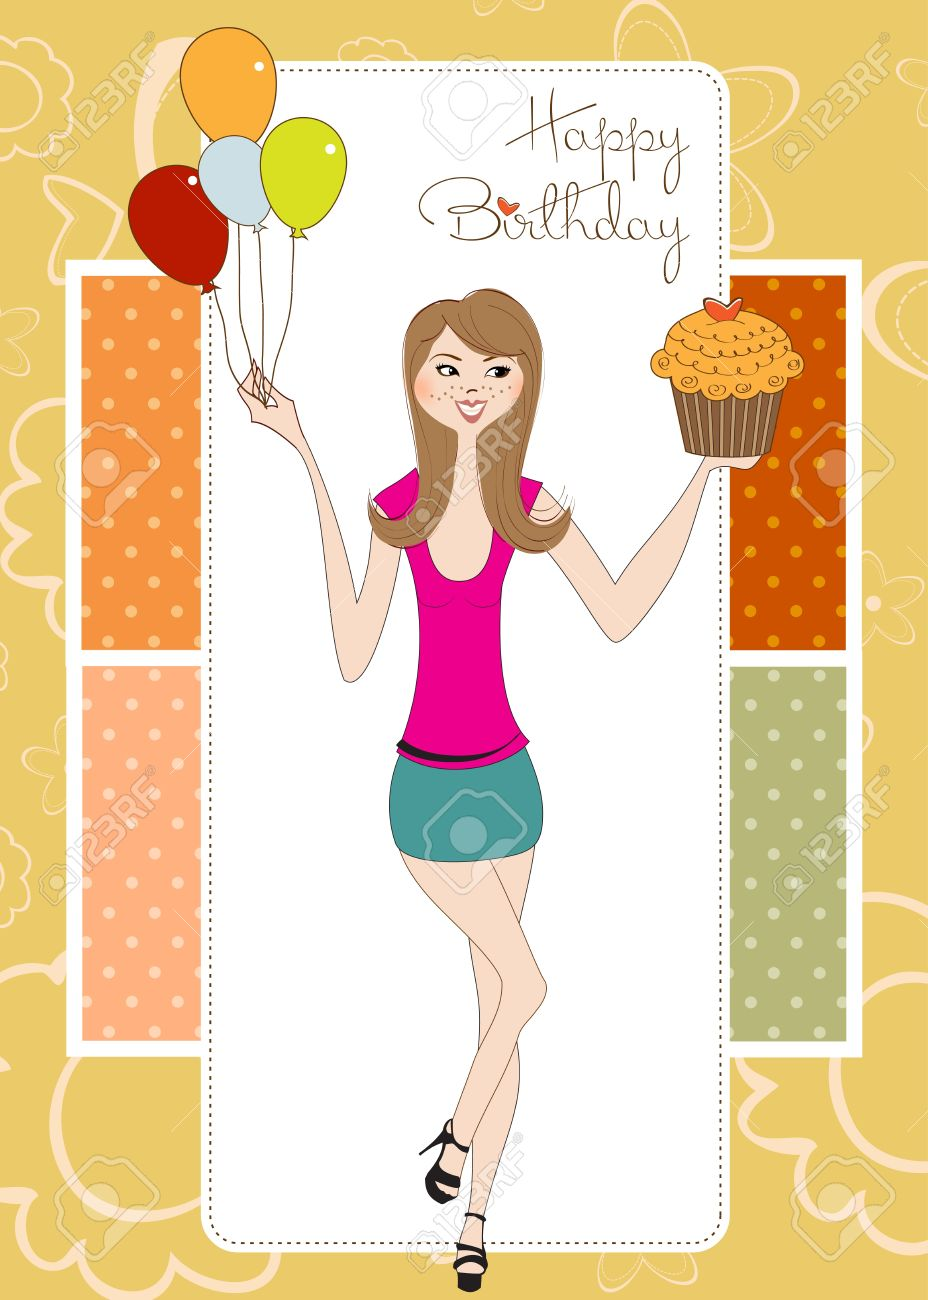 happy birthday young girl ; 11022222-sweet-sixteen-birthday-card-with-young-girl